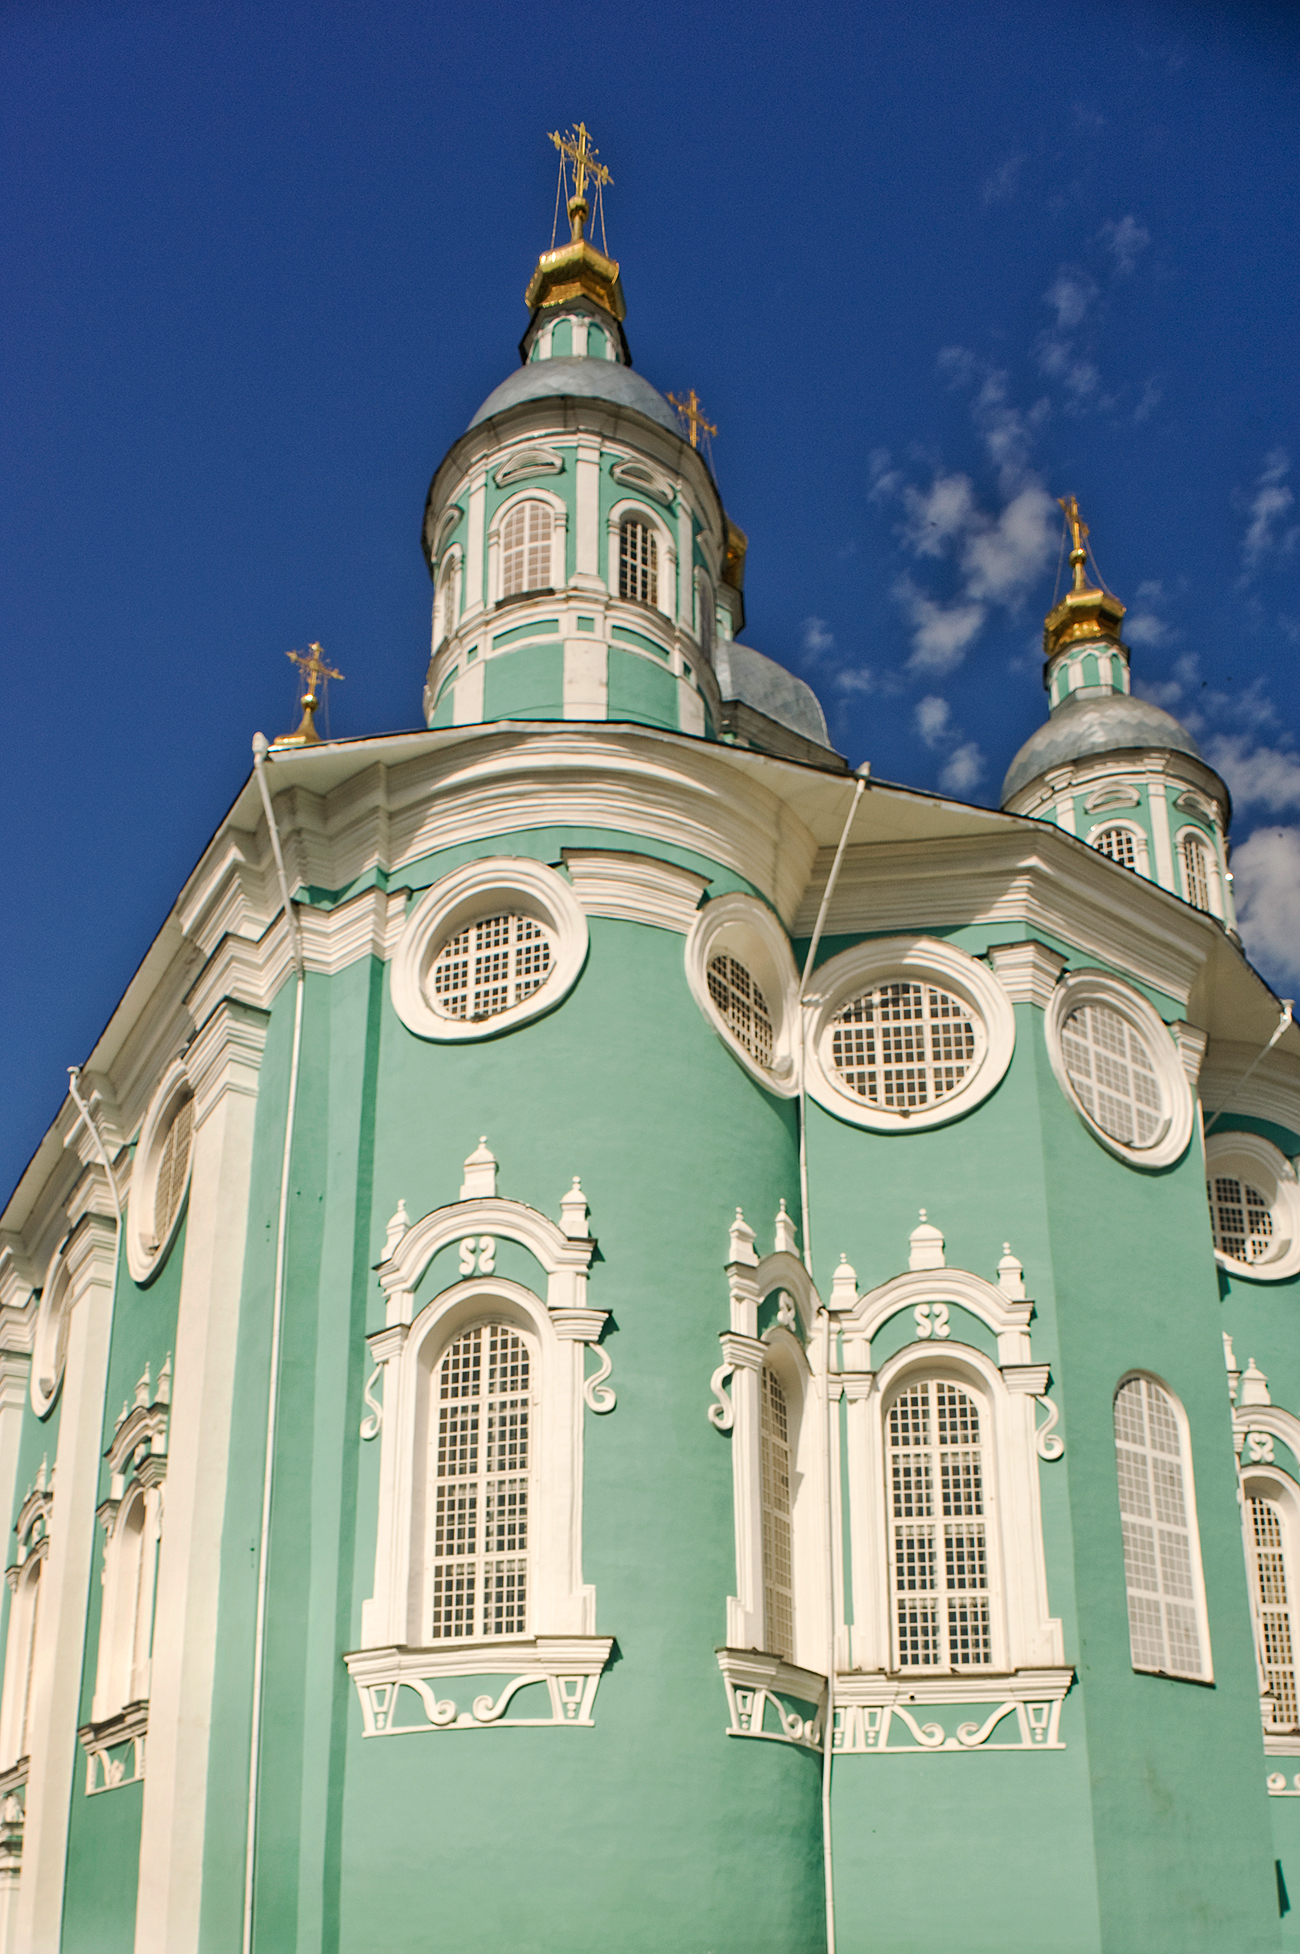 Dormition Cathedral, east facade. July 1, 2014. / Photo: William Brumfield